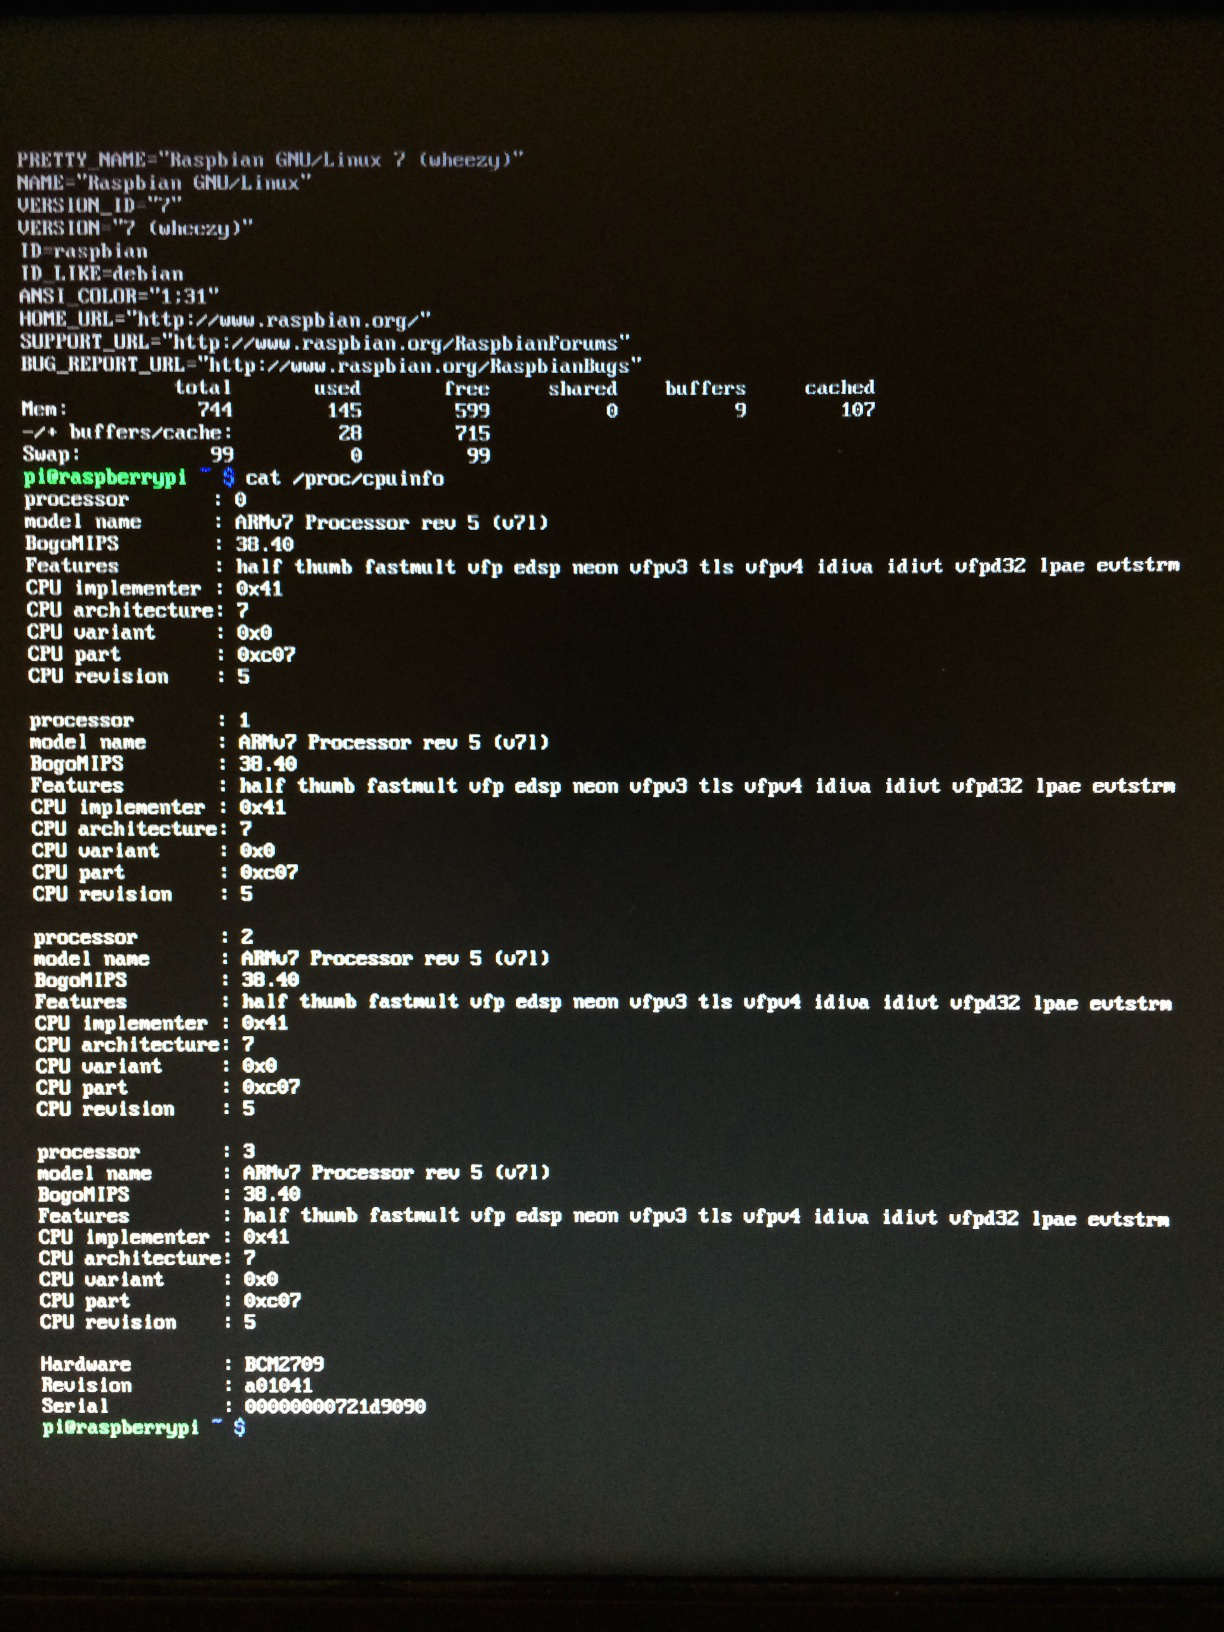 System information (uname, free and /proc/cpuinfo output)